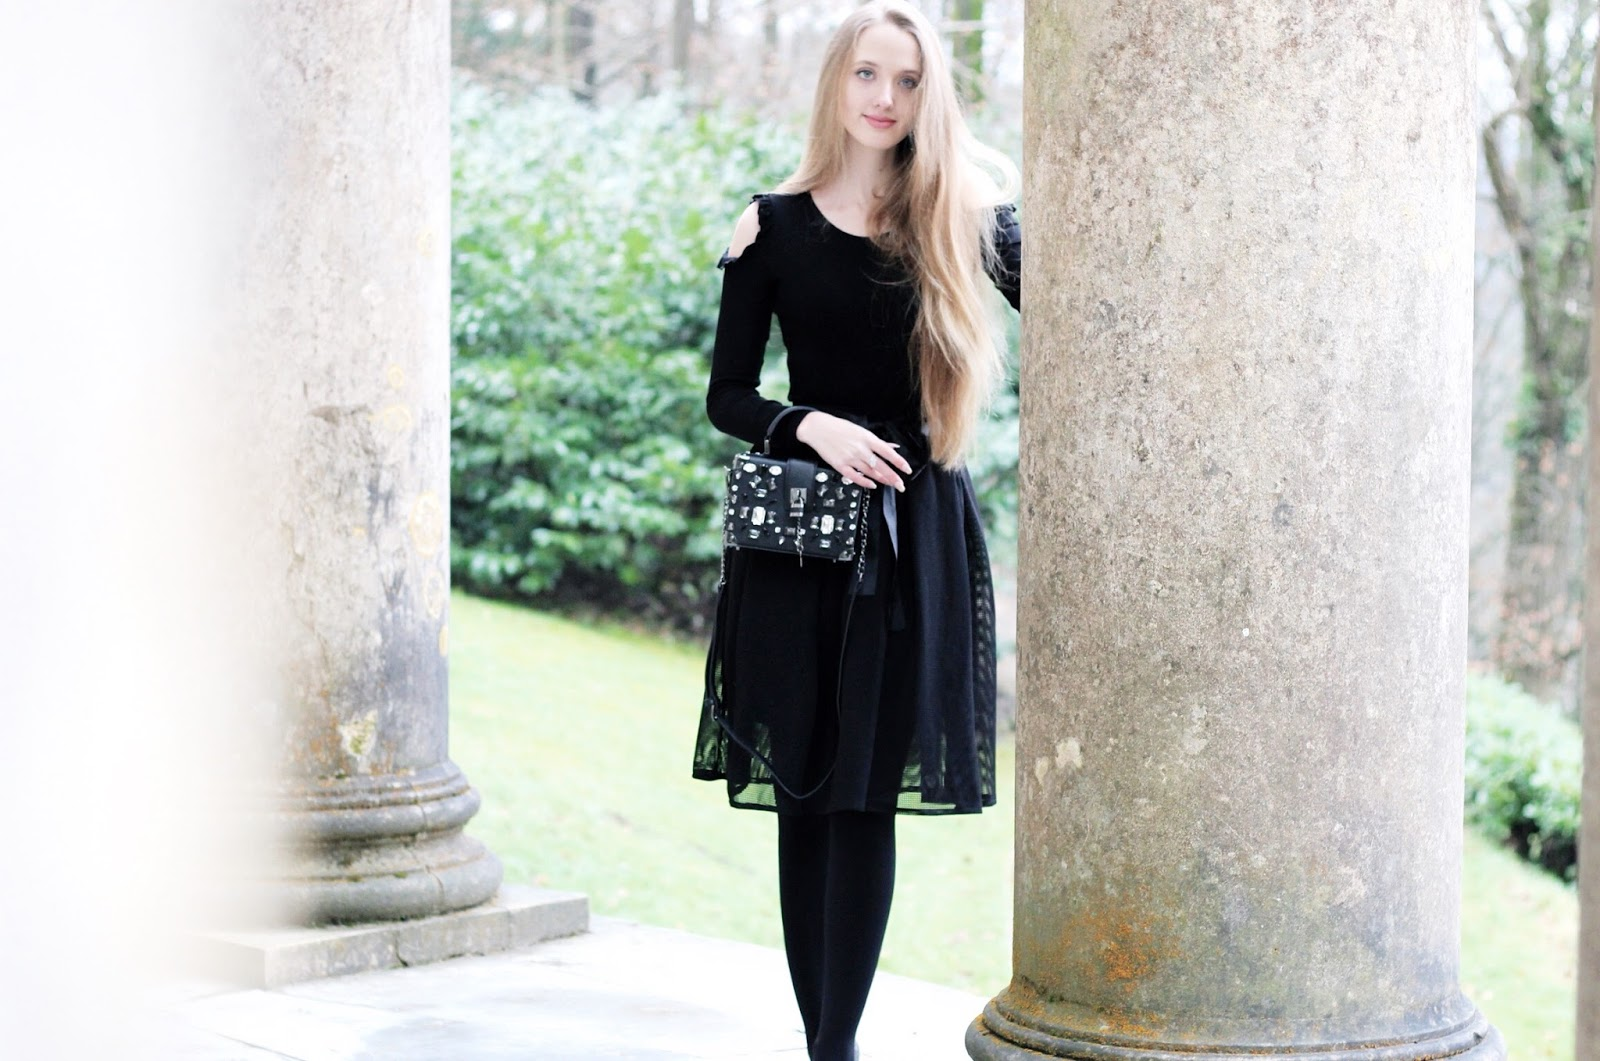 All black elegant winter evening outfit